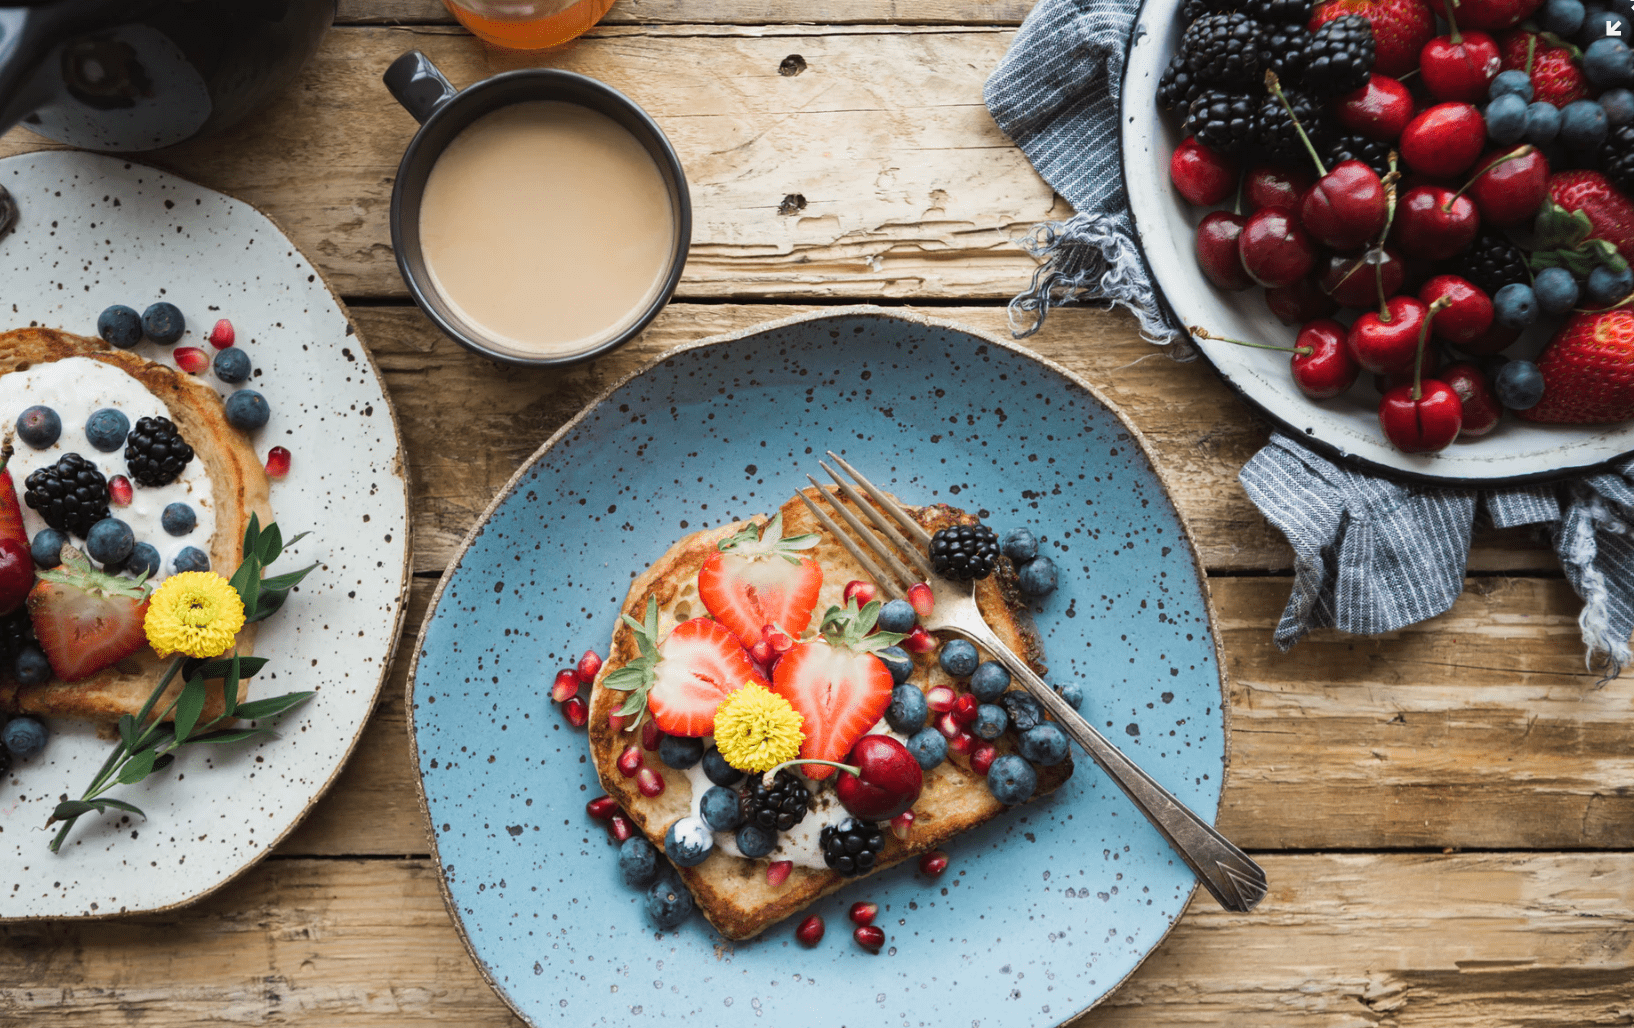 Berries are a great superfood that add sweetness to dishes with little guilt.